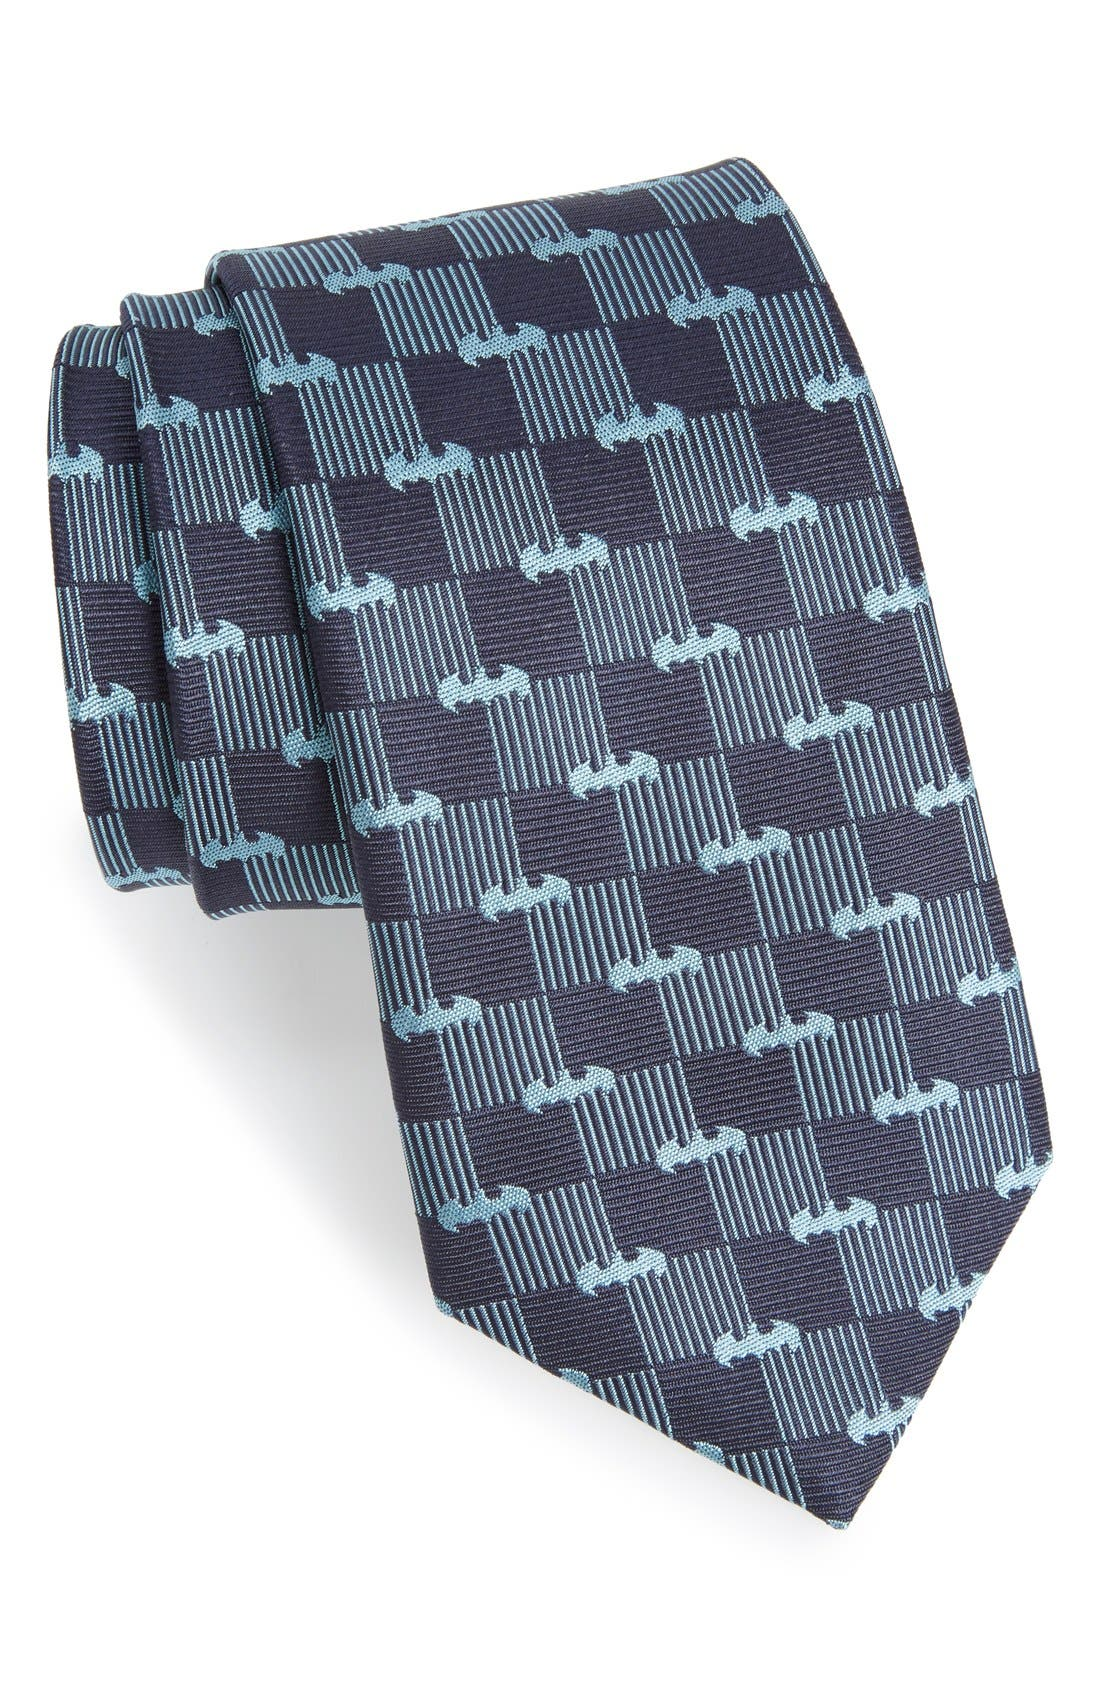 'Batman' Silk Tie,                         Main,                         color, 400